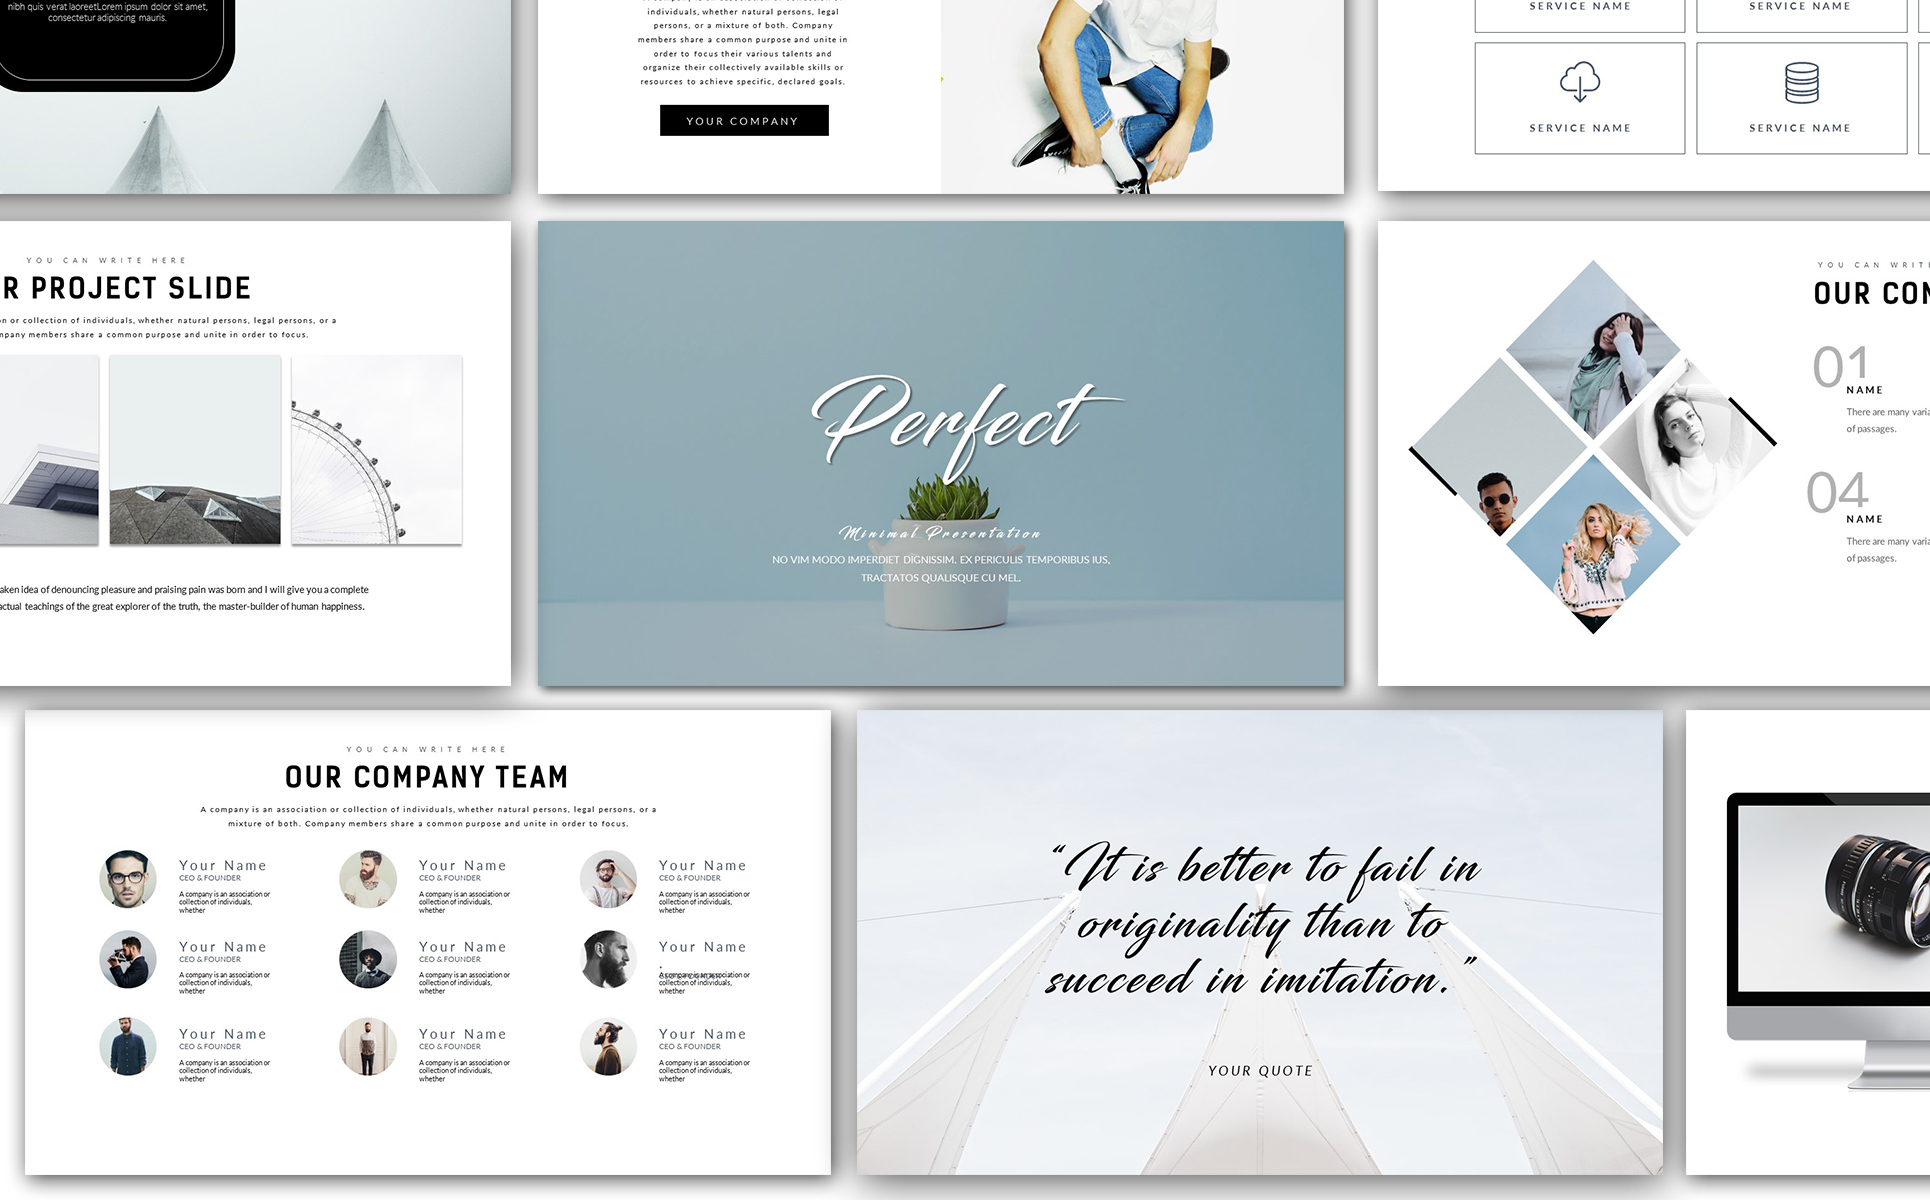 Perfect - Minimal Presentation PowerPoint Template #67868